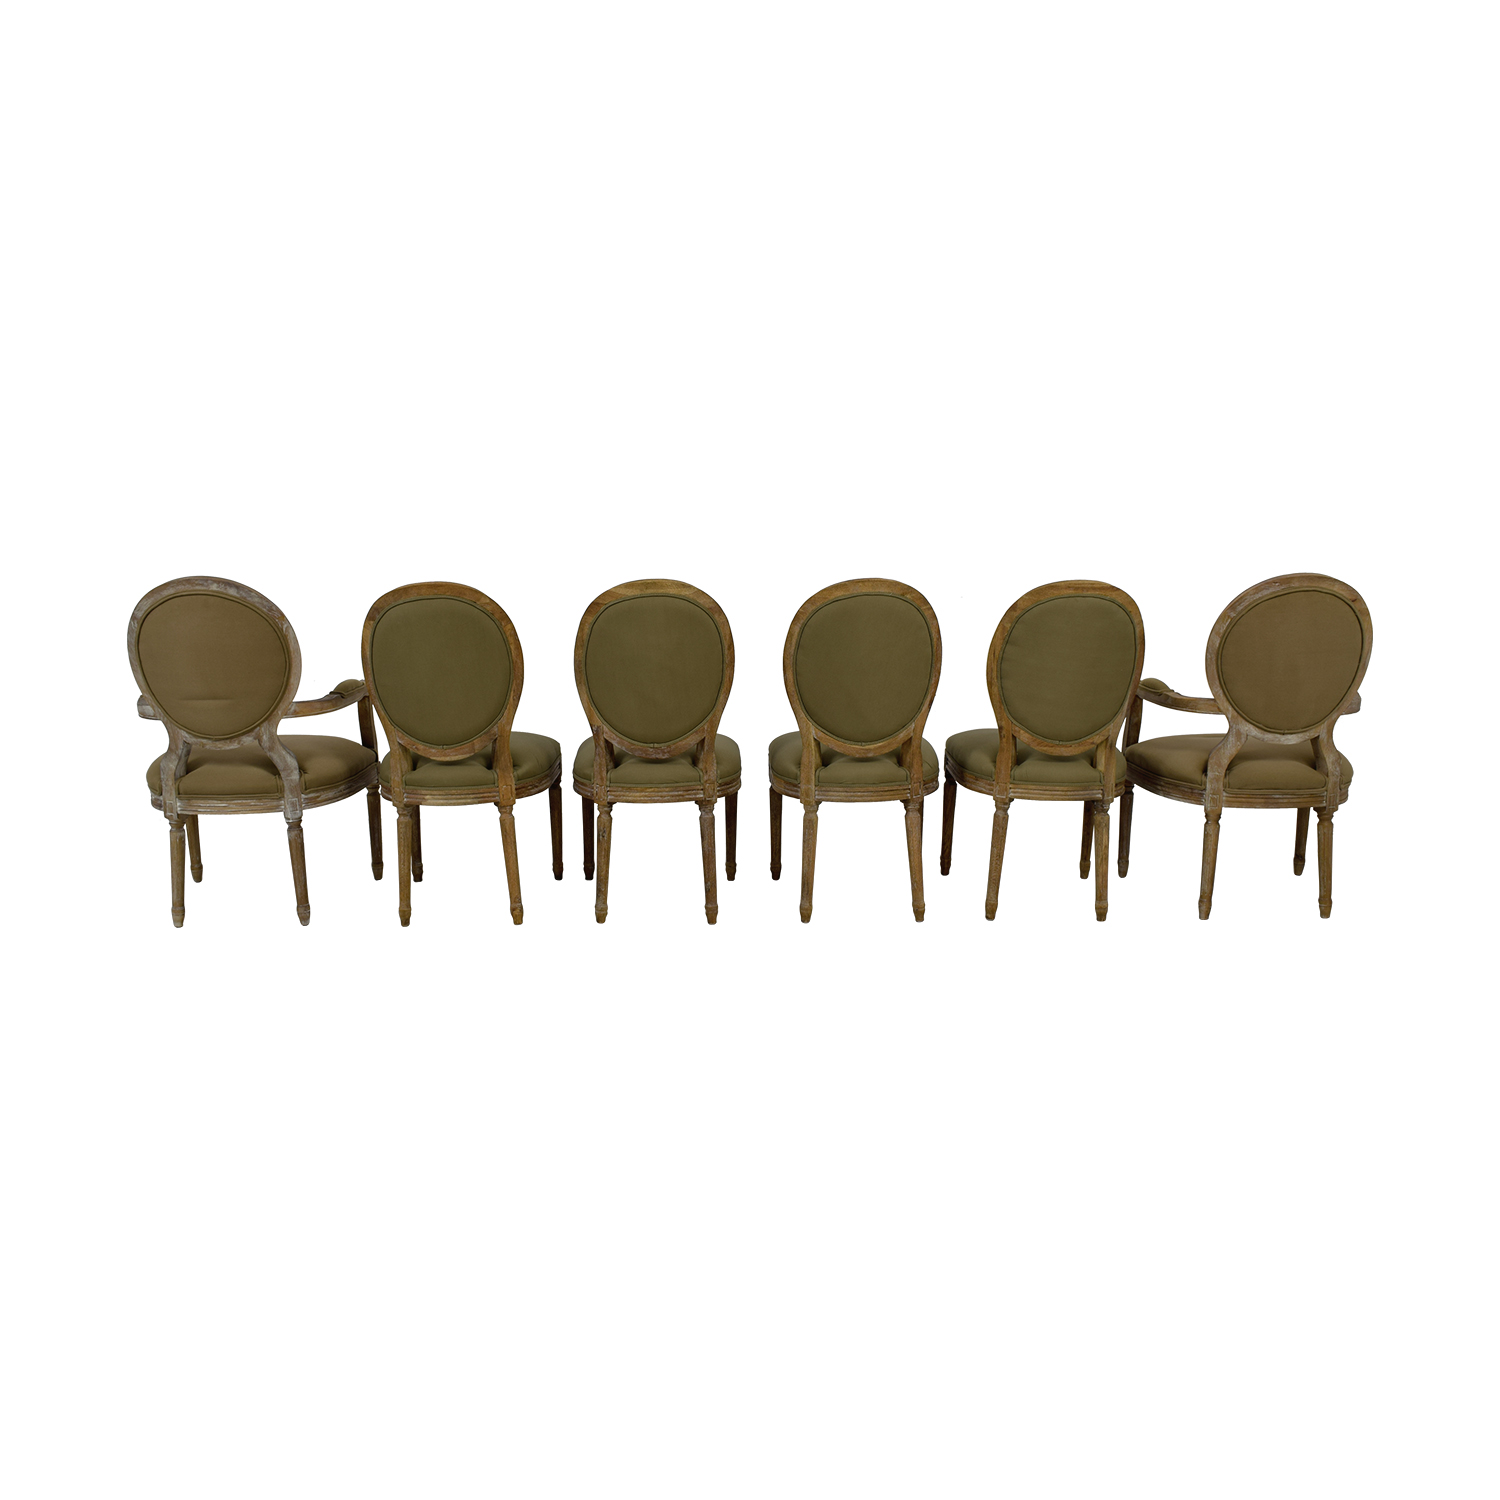 ... Horchow Blanchette Tufted Side Chairs And Arm Chairs / Chairs ...